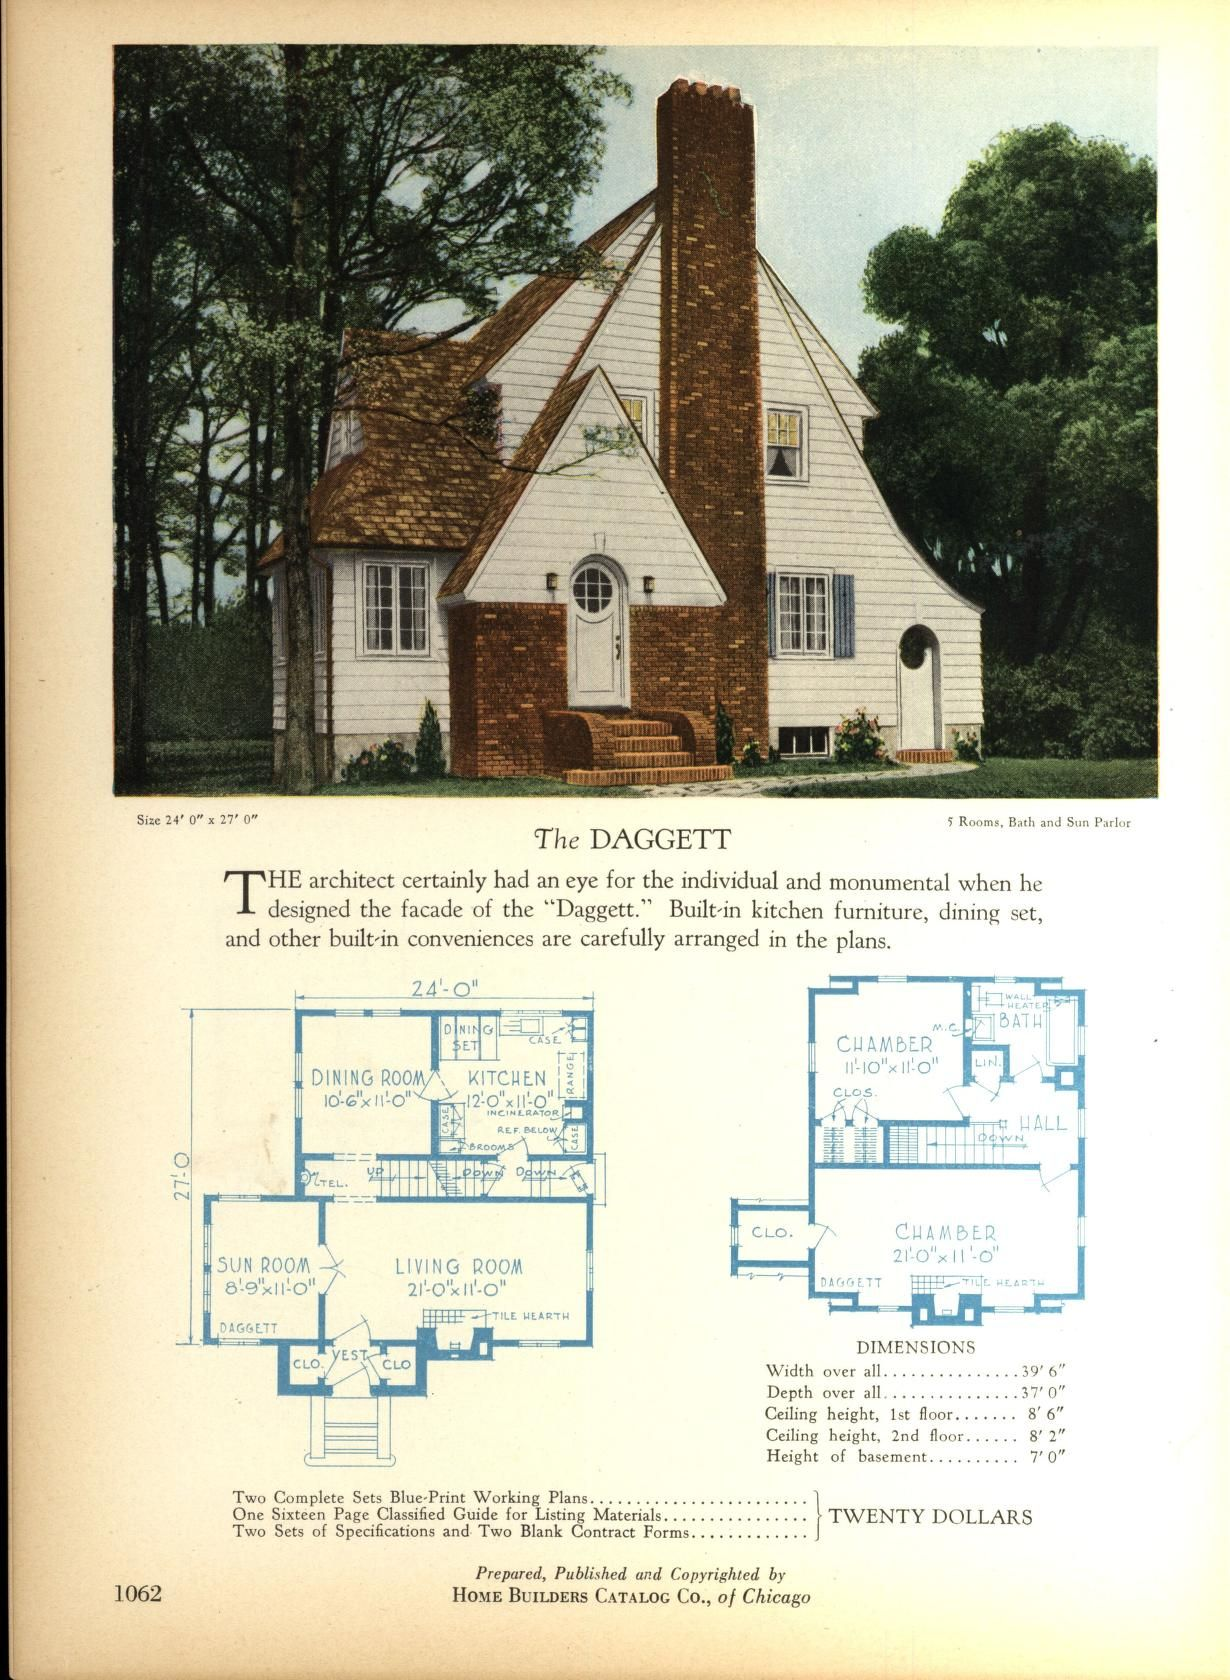 The DAGGETT   Home Builders Catalog  plans of all types of small     The DAGGETT   Home Builders Catalog  plans of all types of small homes by  Home